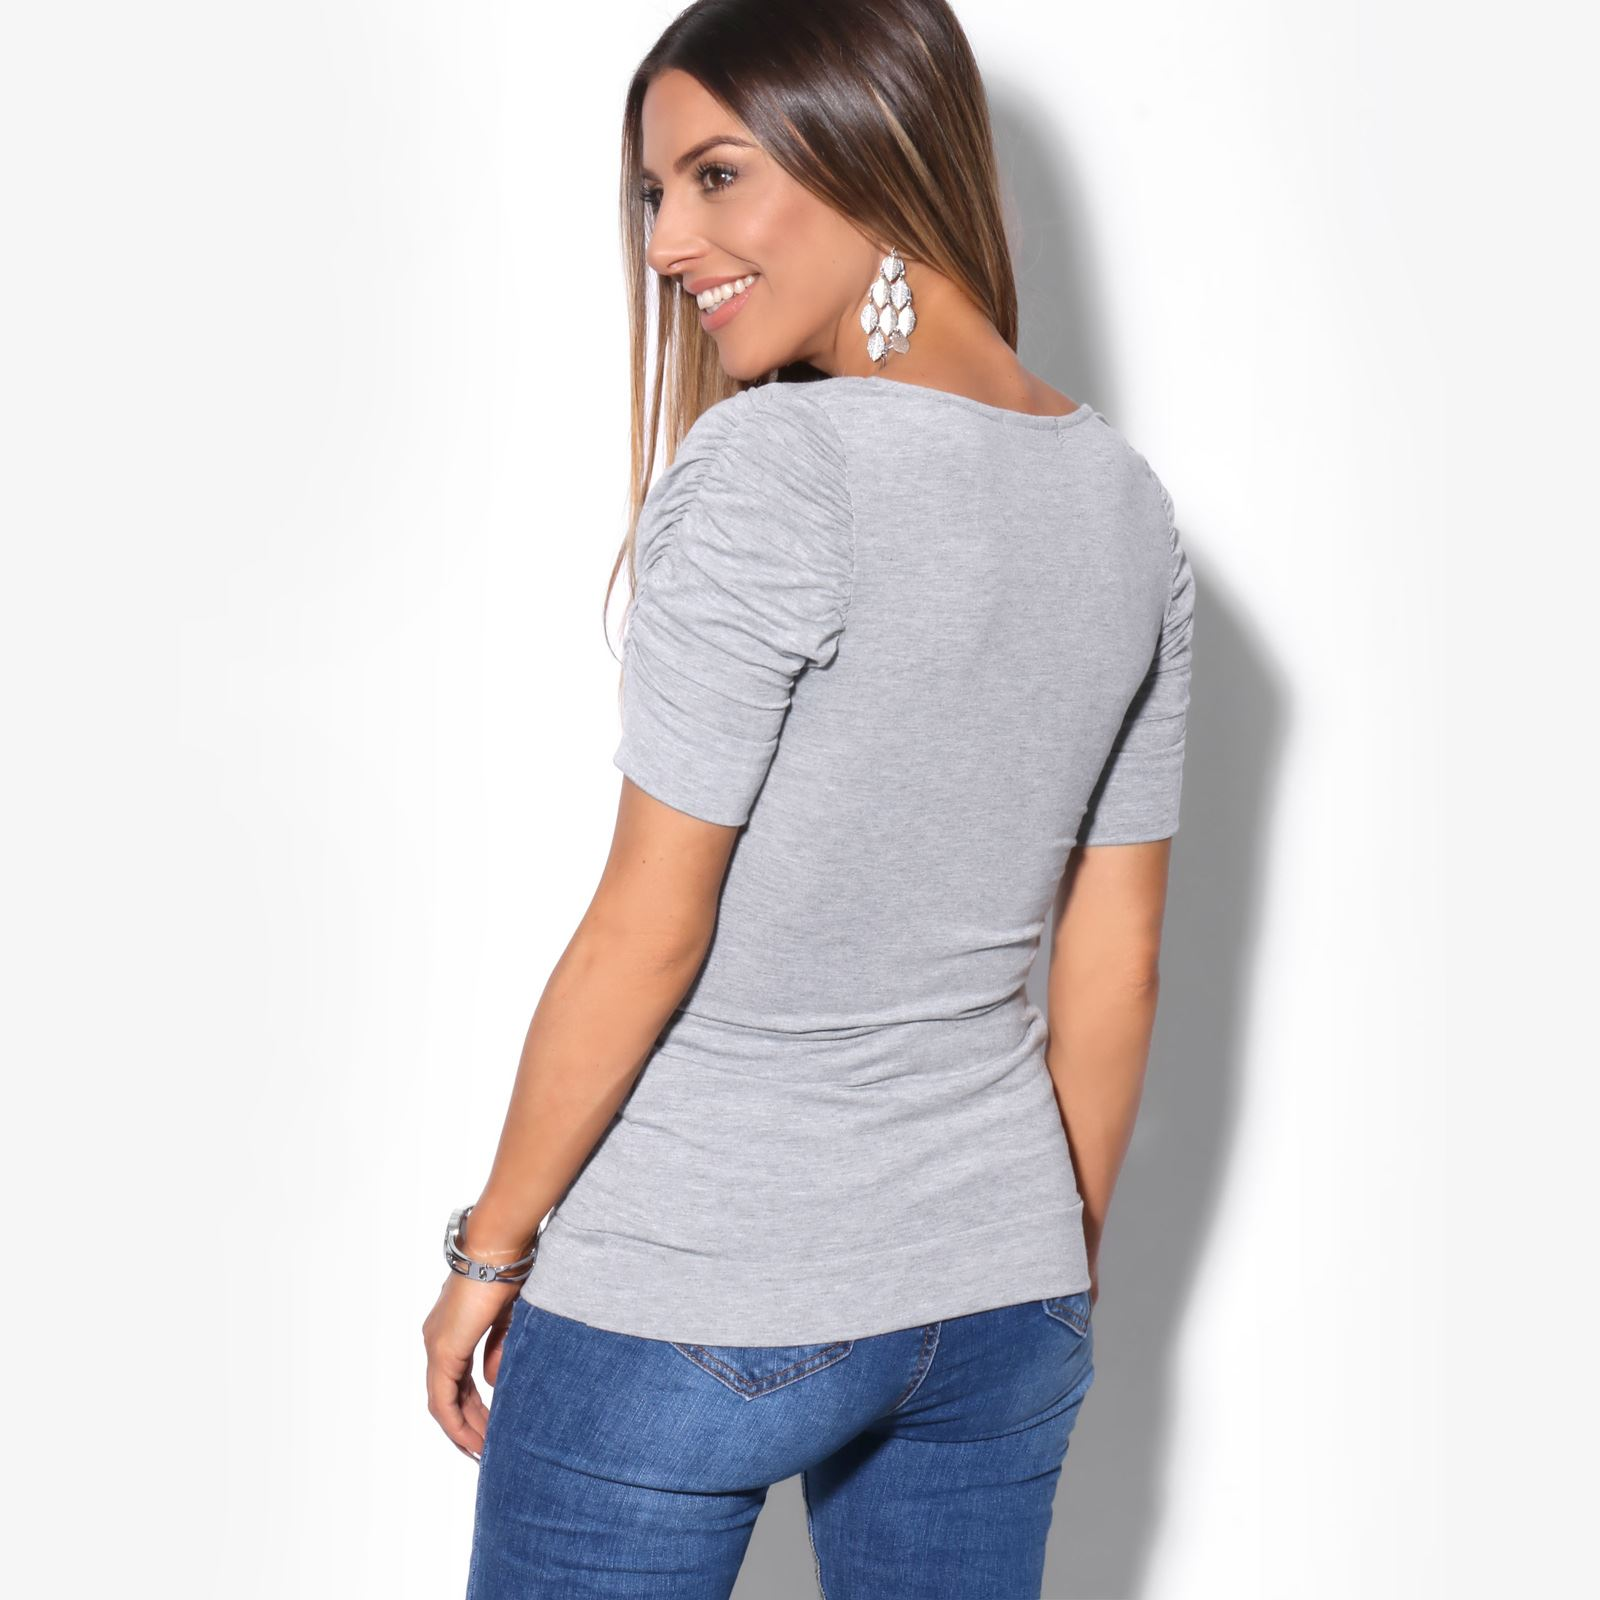 Womens-Ladies-Long-Blouse-Ruched-Pleated-Sleeve-Stretch-Jersey-Plunge-Top-Tshirt thumbnail 10